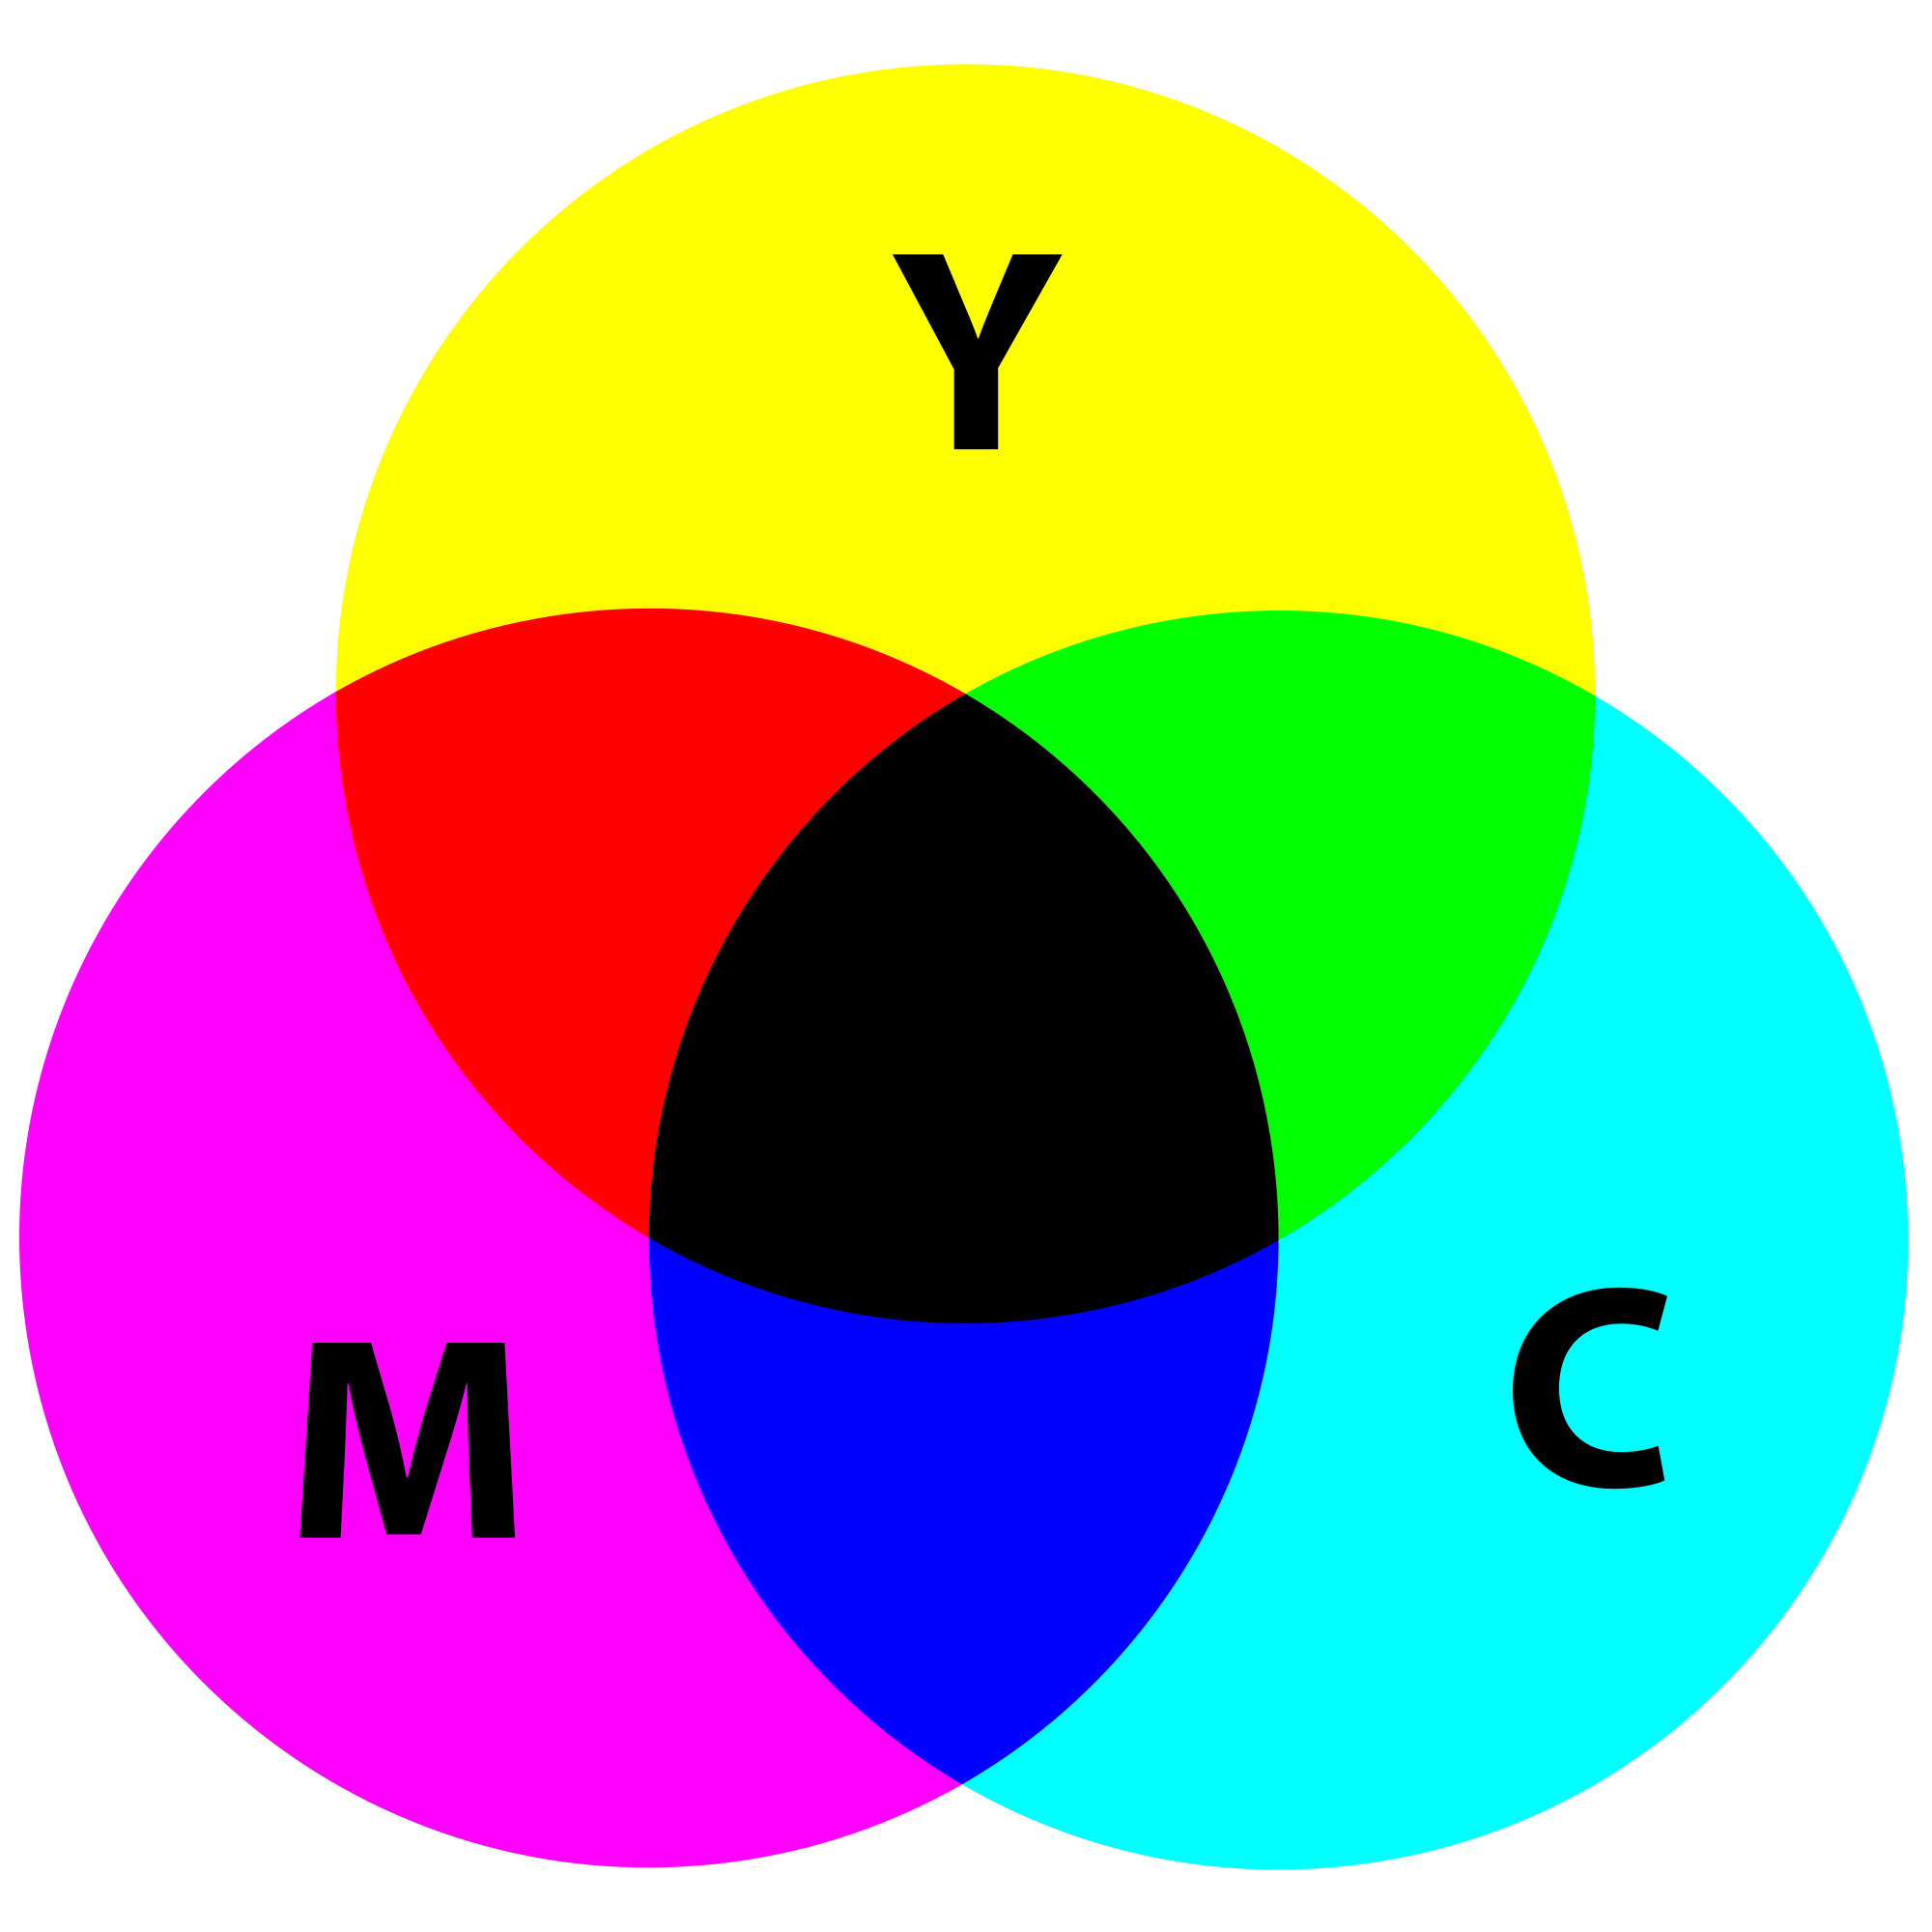 Printing in Color for Your Marketing Materials